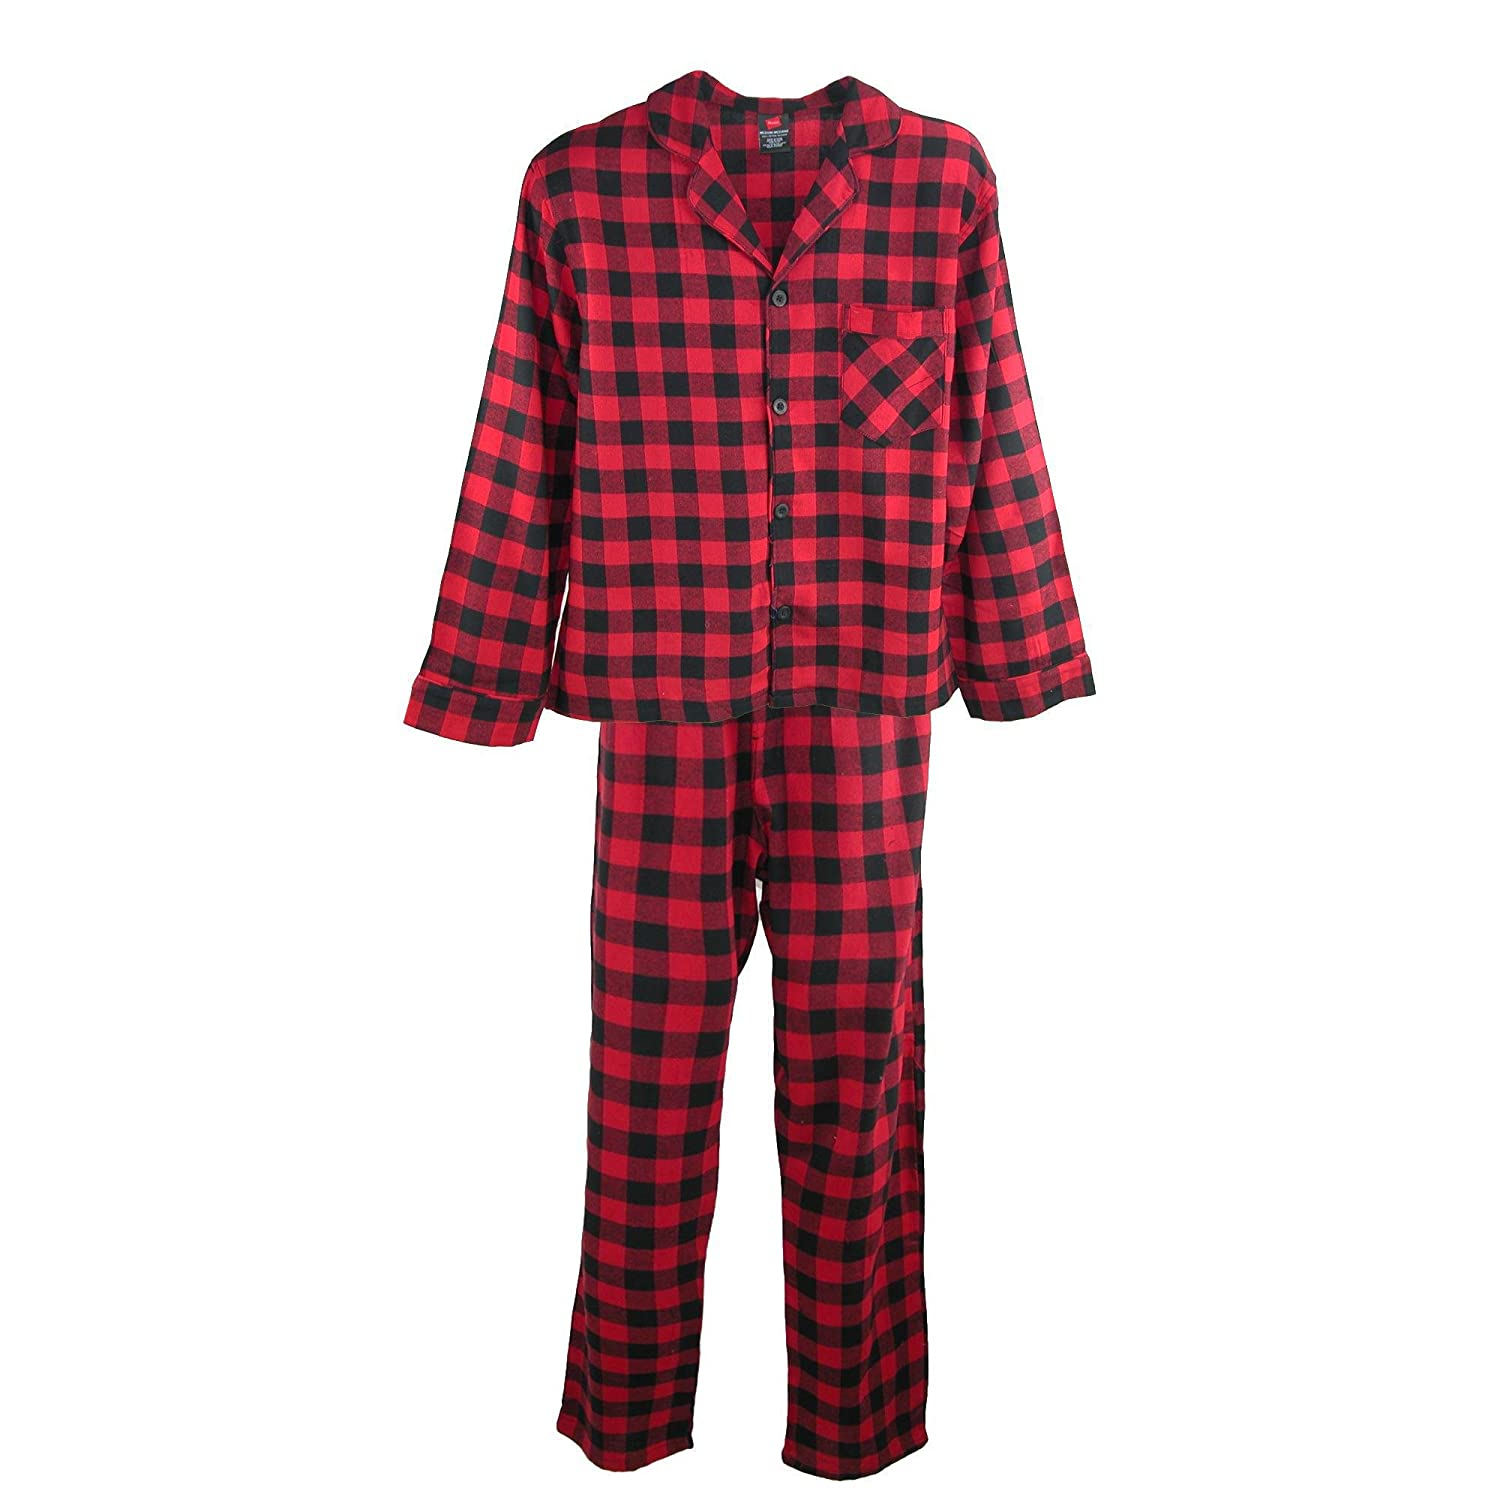 Hanes Men's Cotton Flannel Pajama Set, XL, Red